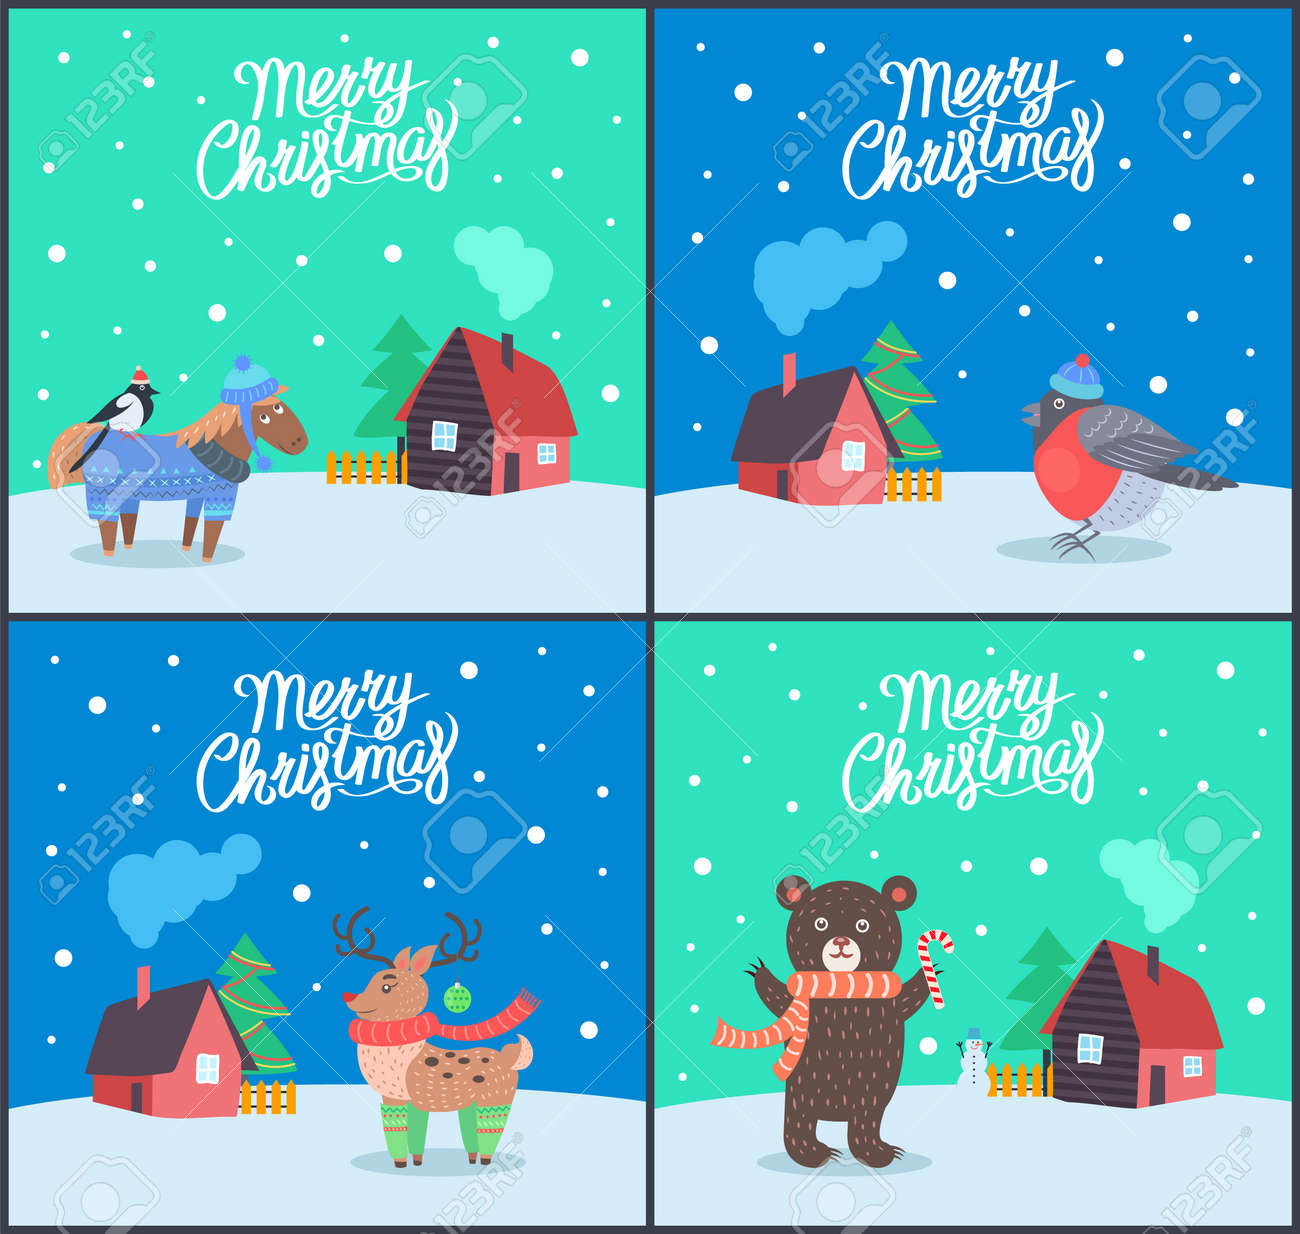 Merry Christmas Animals.Merry Christmas Animals Posters With Greeting Set Vector Bullfinch